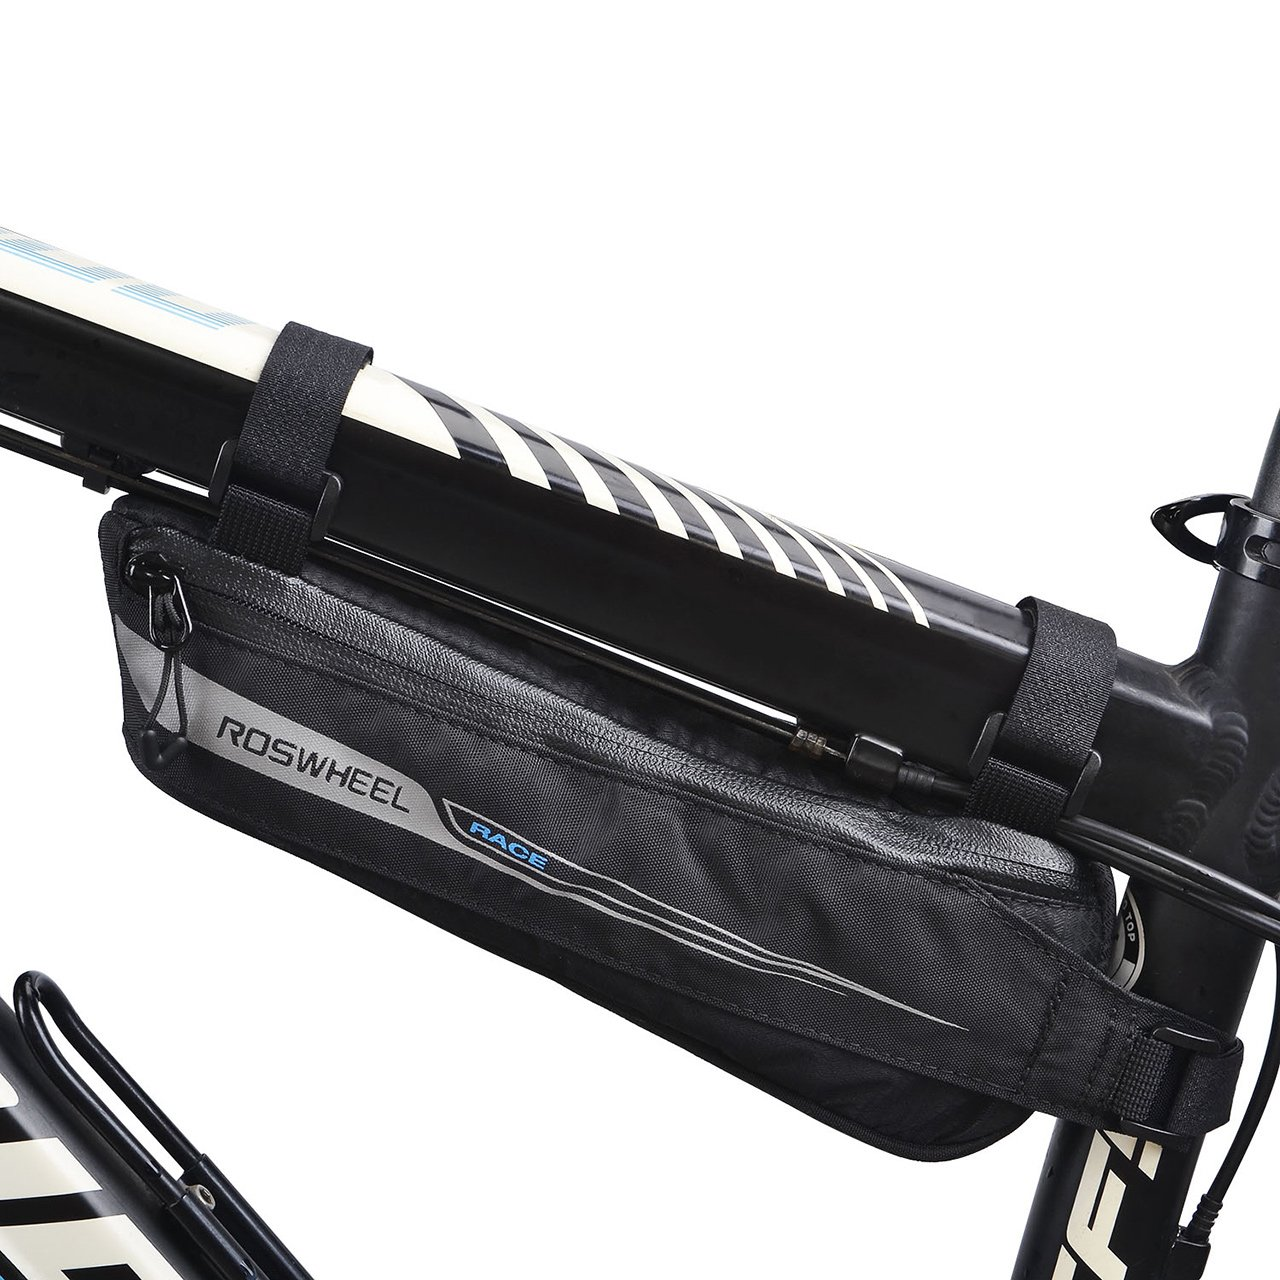 FlexDin Bicycle Triangle Frame Tool Bag Aerodynamic Design for Road Racing/Touring, Cycling Under Seat Road Bike Top Tube Pack Pouch Waterproof 0.6L Black